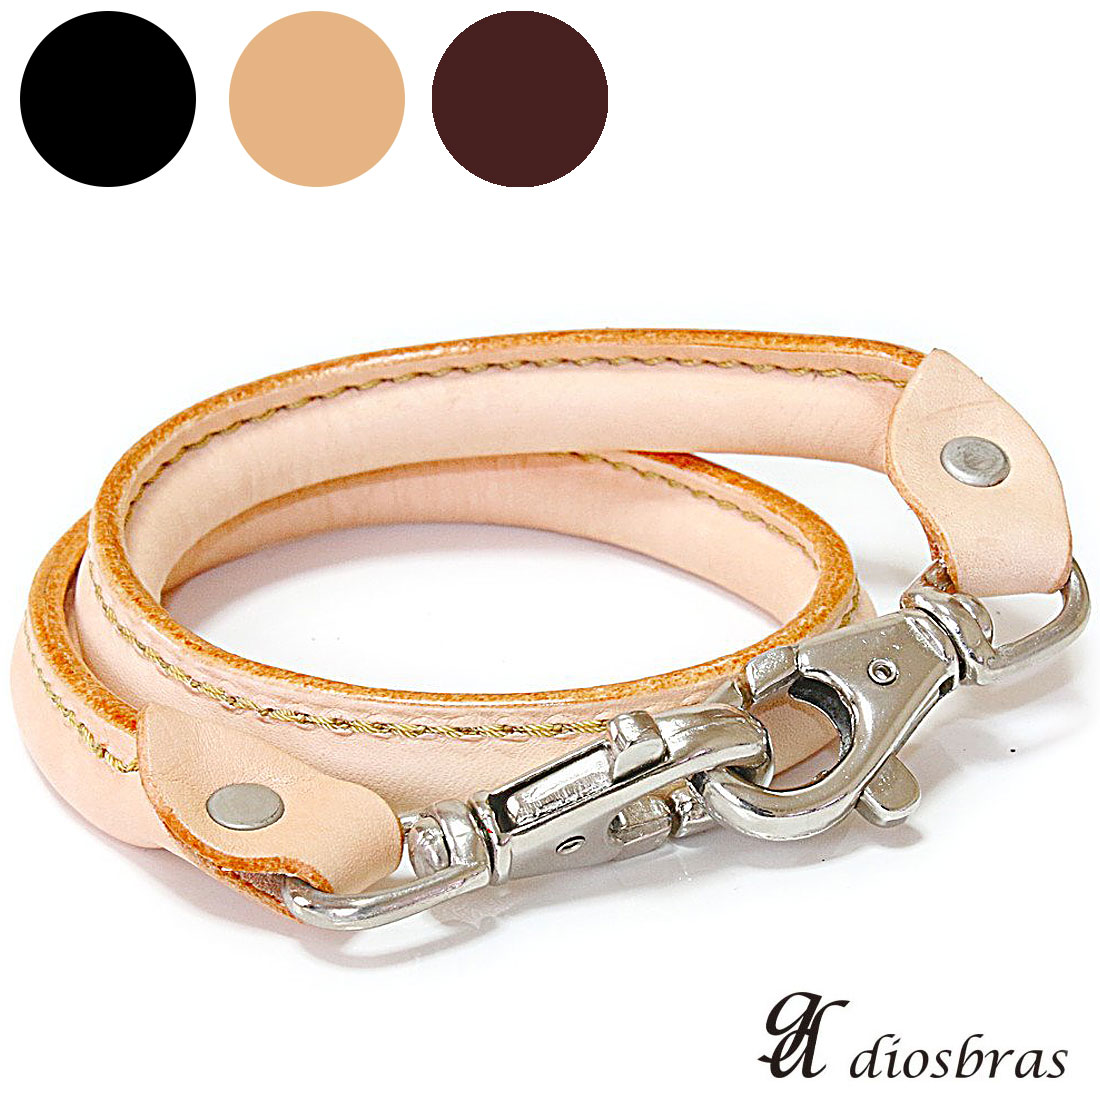 2179d1c3ceeb diosbras  It is a real leather leather wallet chain material